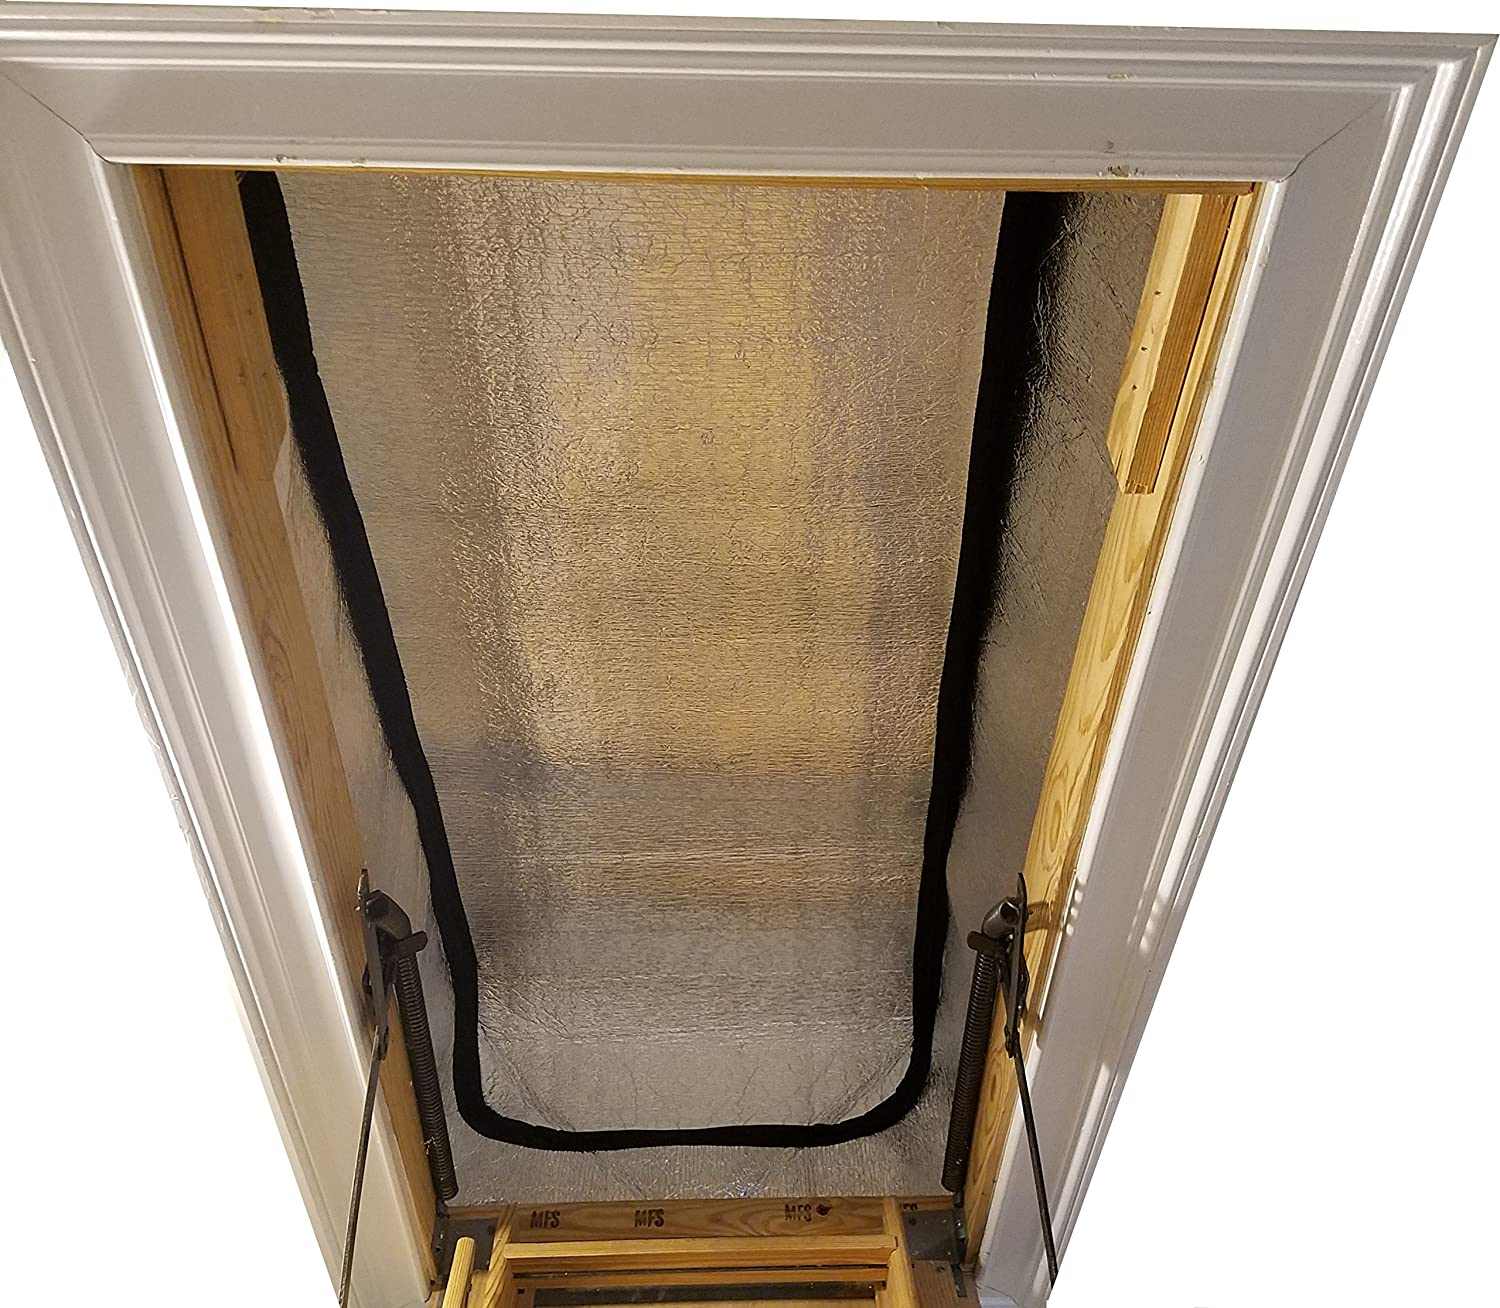 Pull Down Attic Ladder Insulating Stair Cover 25 x 54 x 11